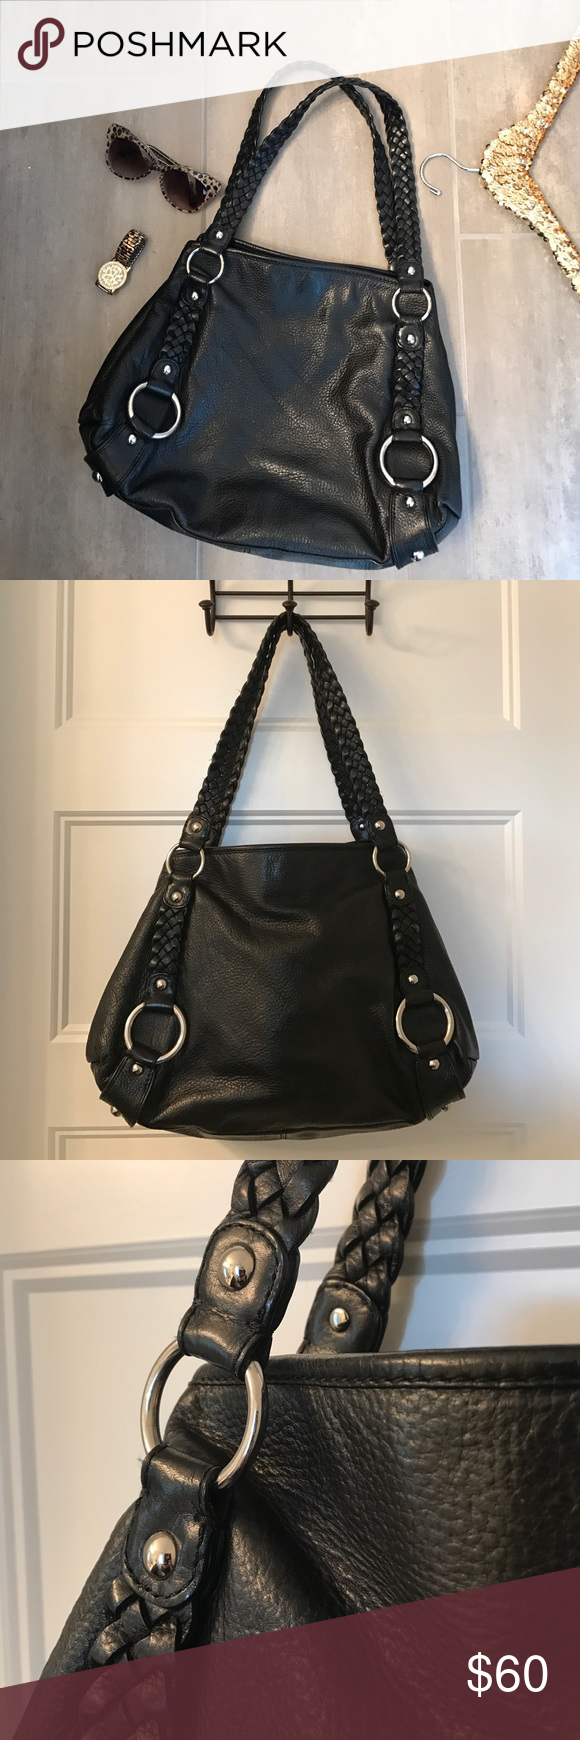 "EUC Banana Republic leather kempton harness tote Banana Republic. Very lightly used. Very minimal signs of wear if any at all. Silver tone hardware. Black leather.  Braided straps. Magnetic closure. BR signature lining.  All zippers work. Approx measures. 14.5 x 12 x 3.5 .  Strap drop - 11"". Banana Republic Bags Shoulder Bags"